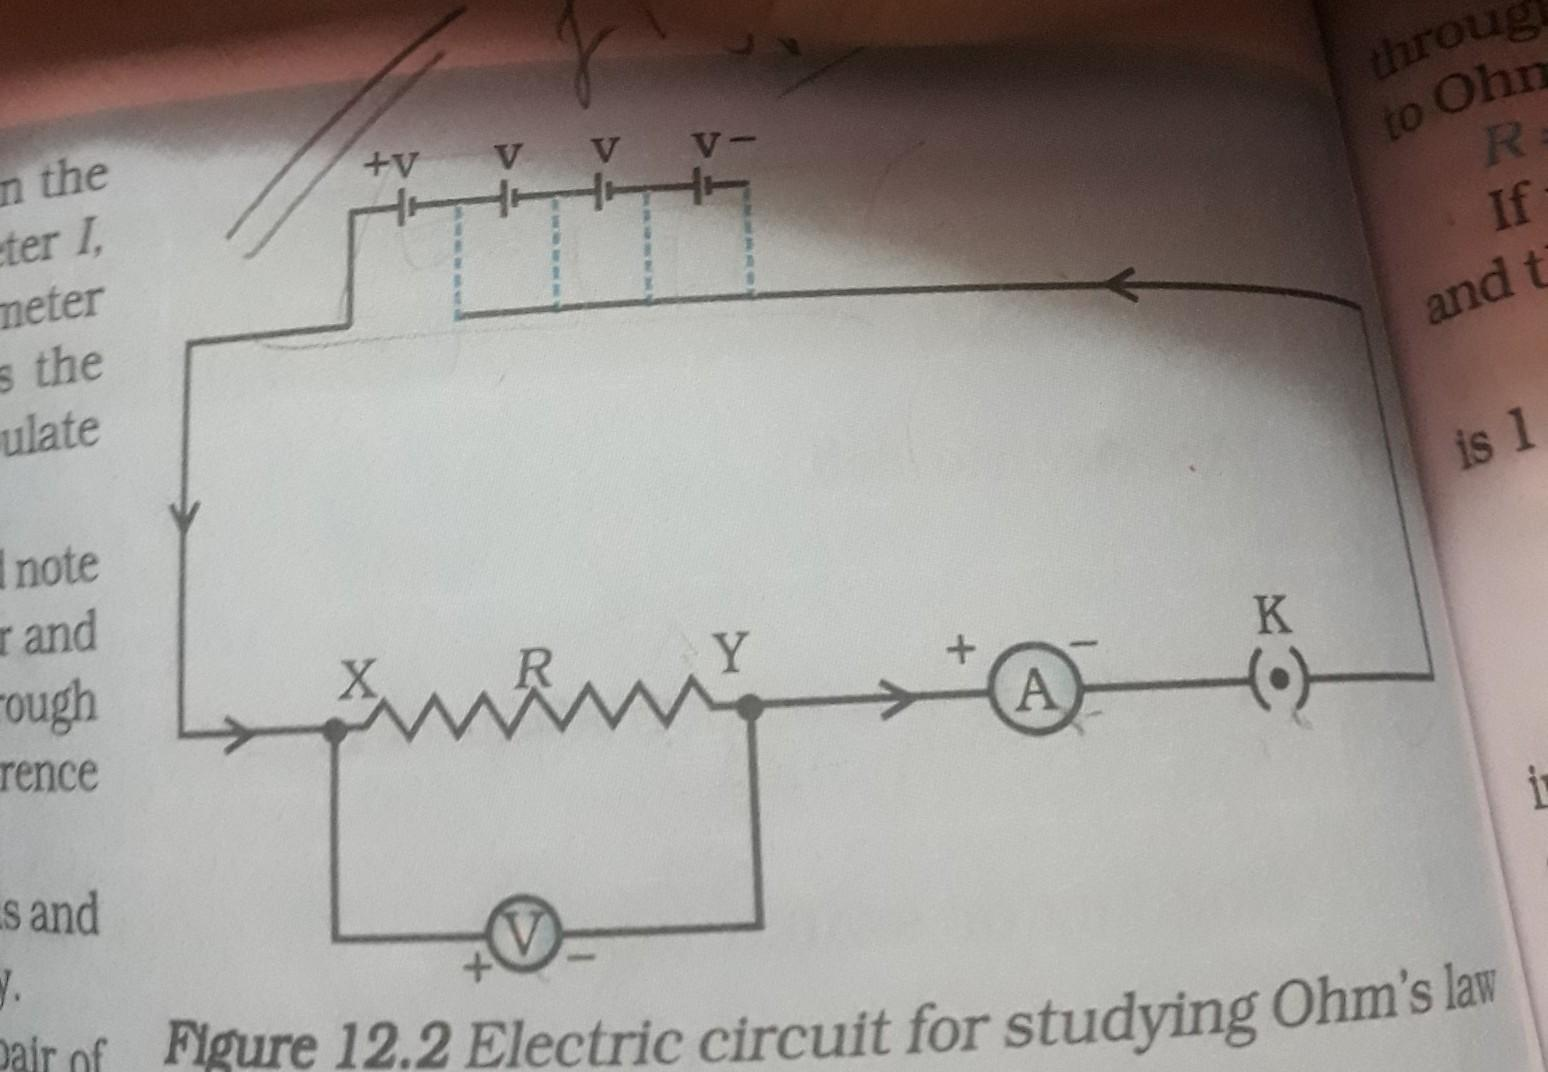 hight resolution of draw the circuit diagram used to verify ohms law brainly in this is the circuit diagram i used